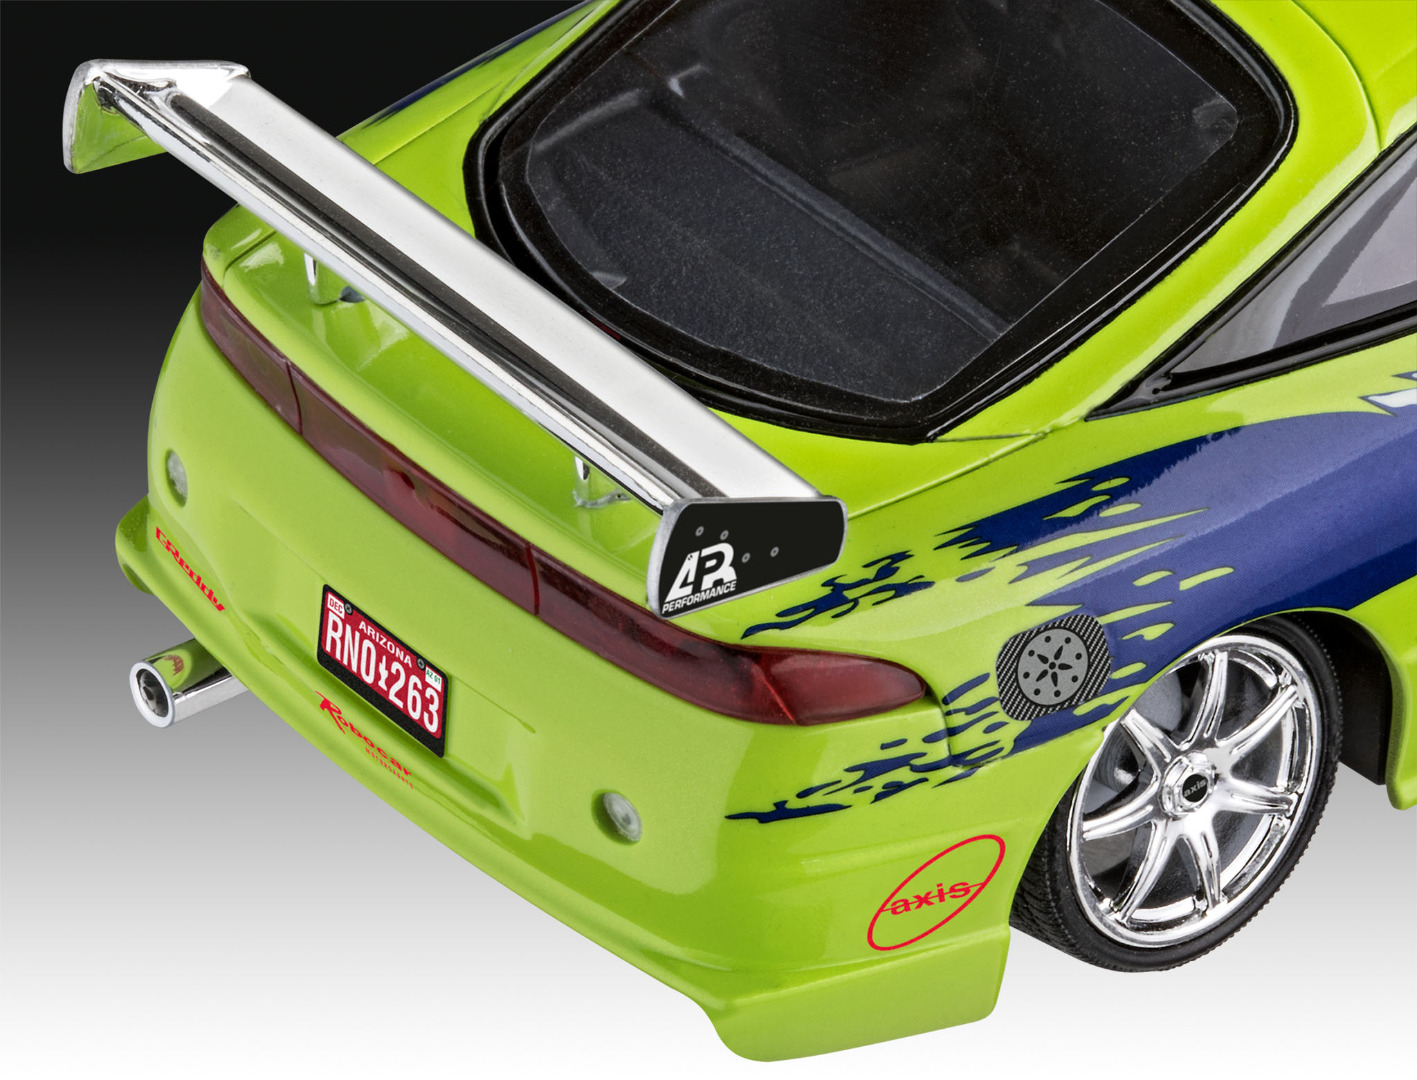 Revell Model Kit Fast & Furious Brian's 1995 Mitsubishi Eclipse Scale 1:25